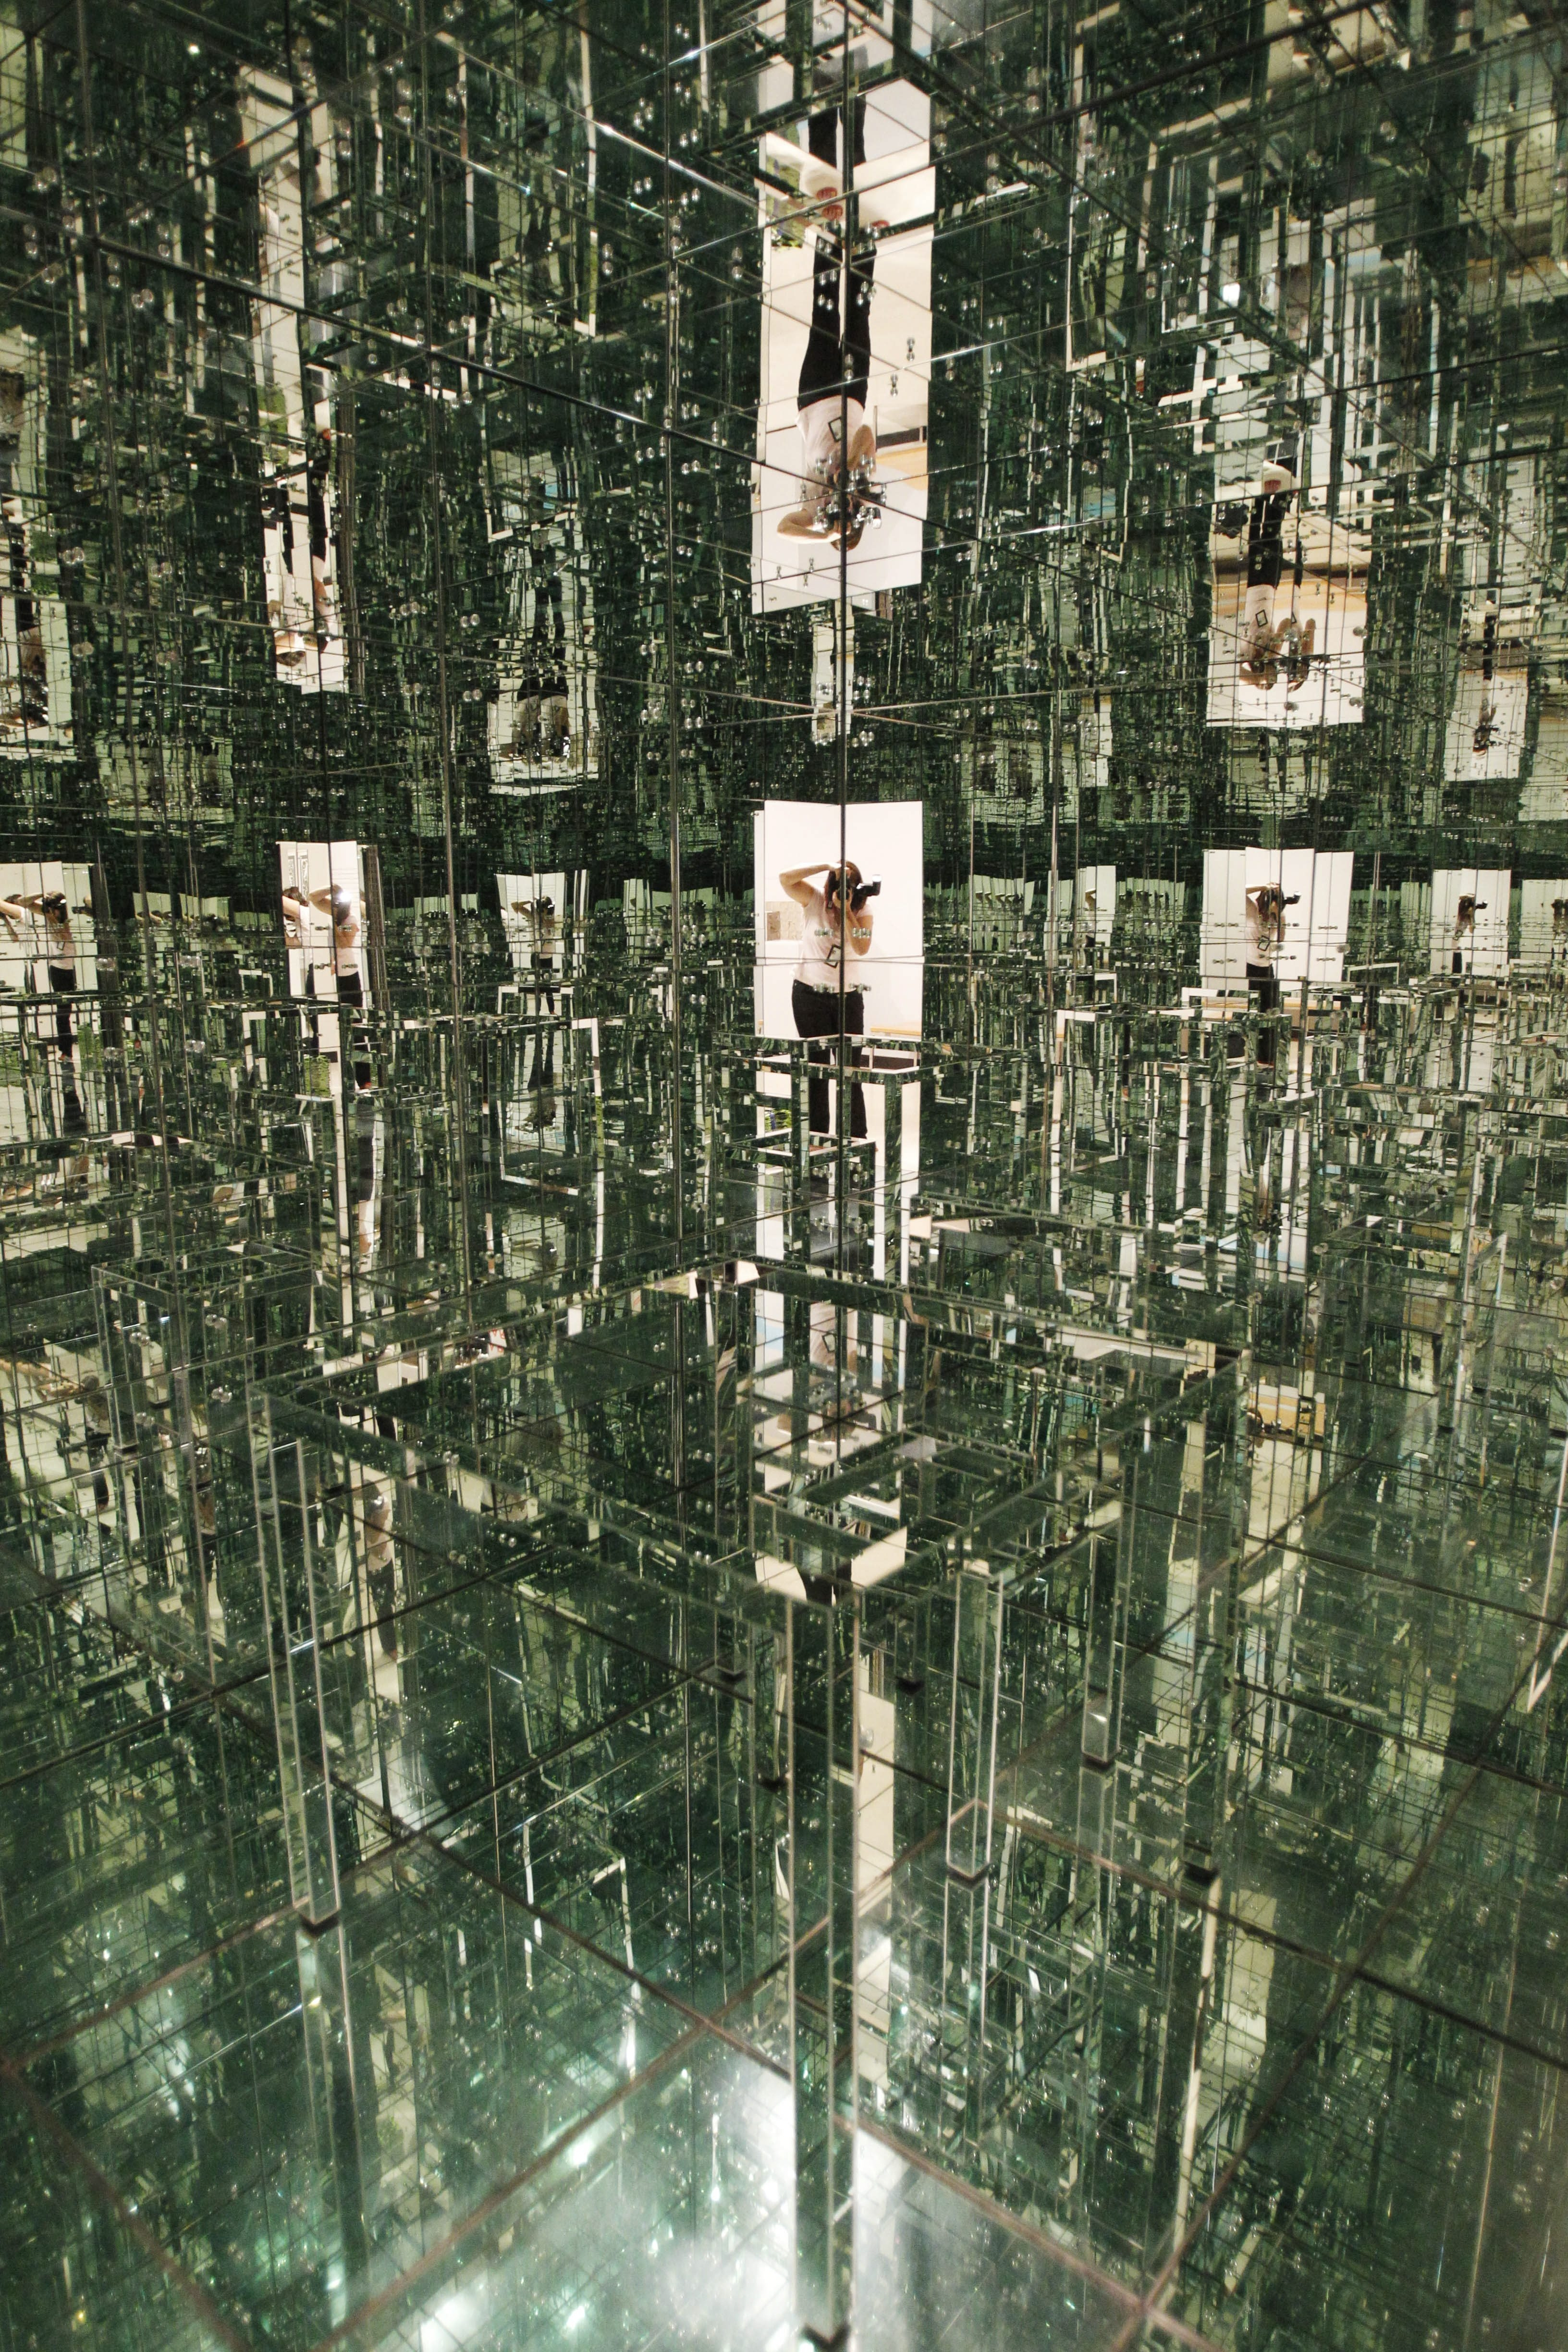 """""""Room No. 2"""" by Lucas Samaras, known as the """"Mirrored Room,"""" is back on display in the Albright-Knox Art Gallery. (Sharon Cantillon/Buffalo News)"""